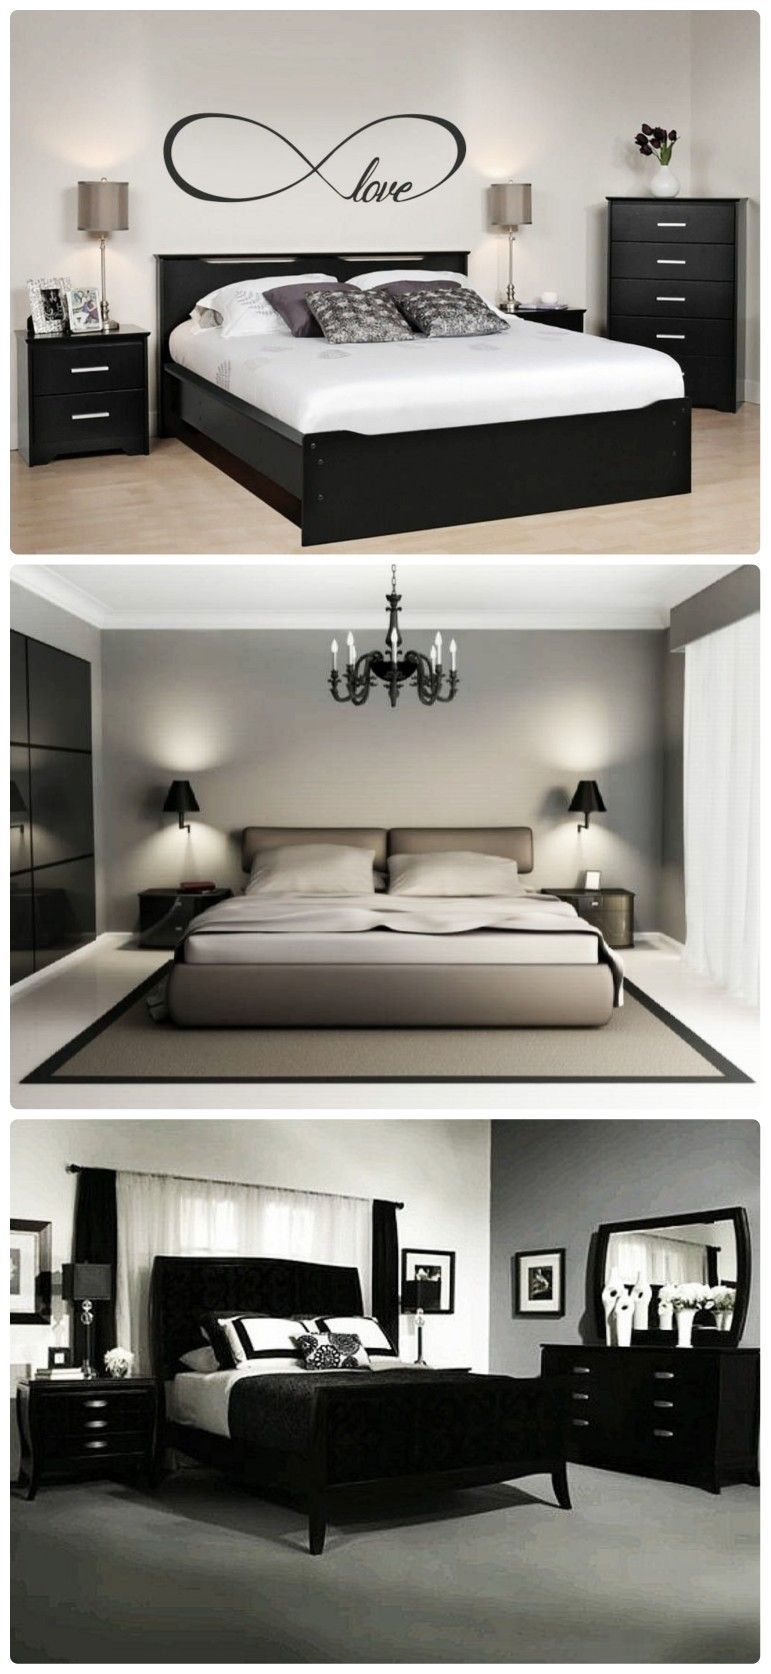 Amazing Bedroom Design Ideas Simple Modern Minimalist Etc